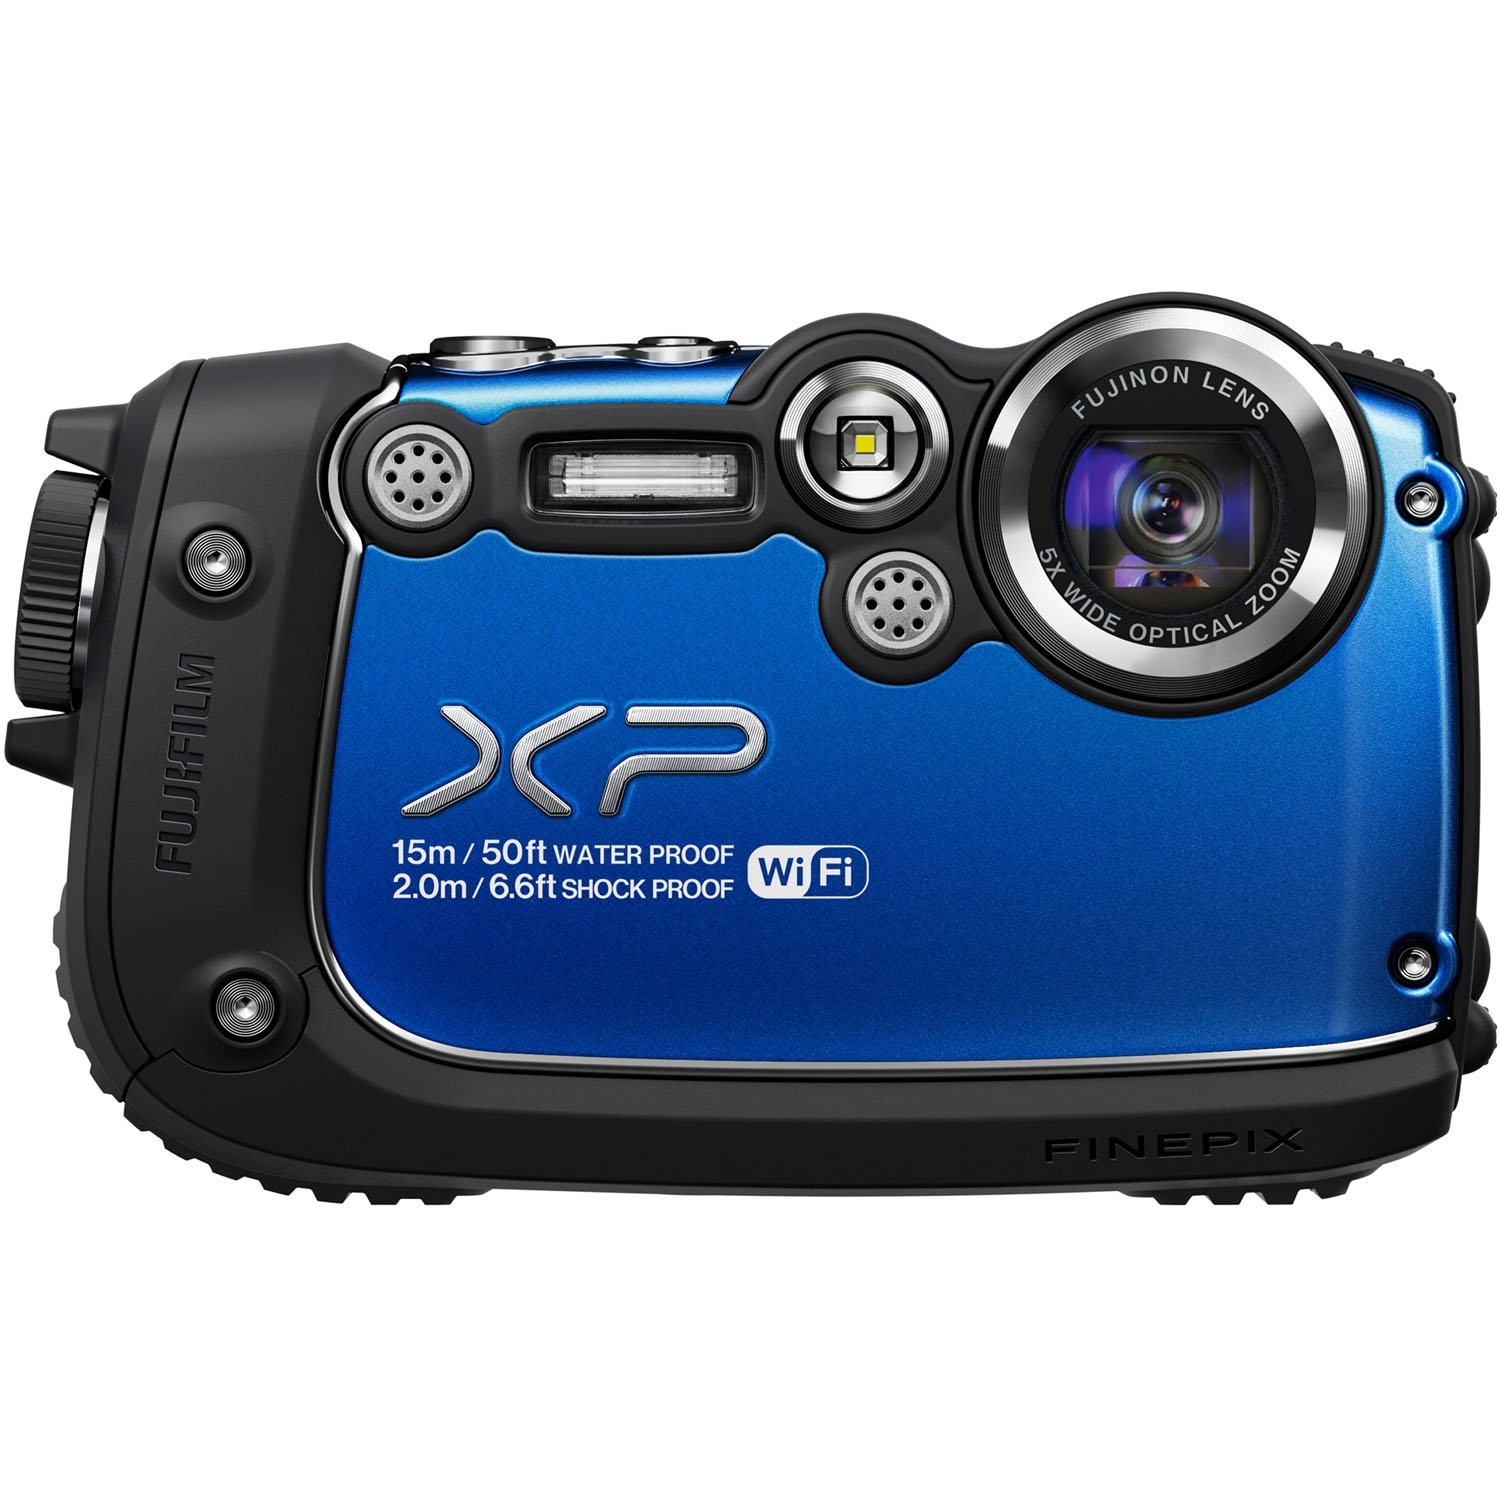 Fujifilm FinePix XP200 Underwater Digital Camera